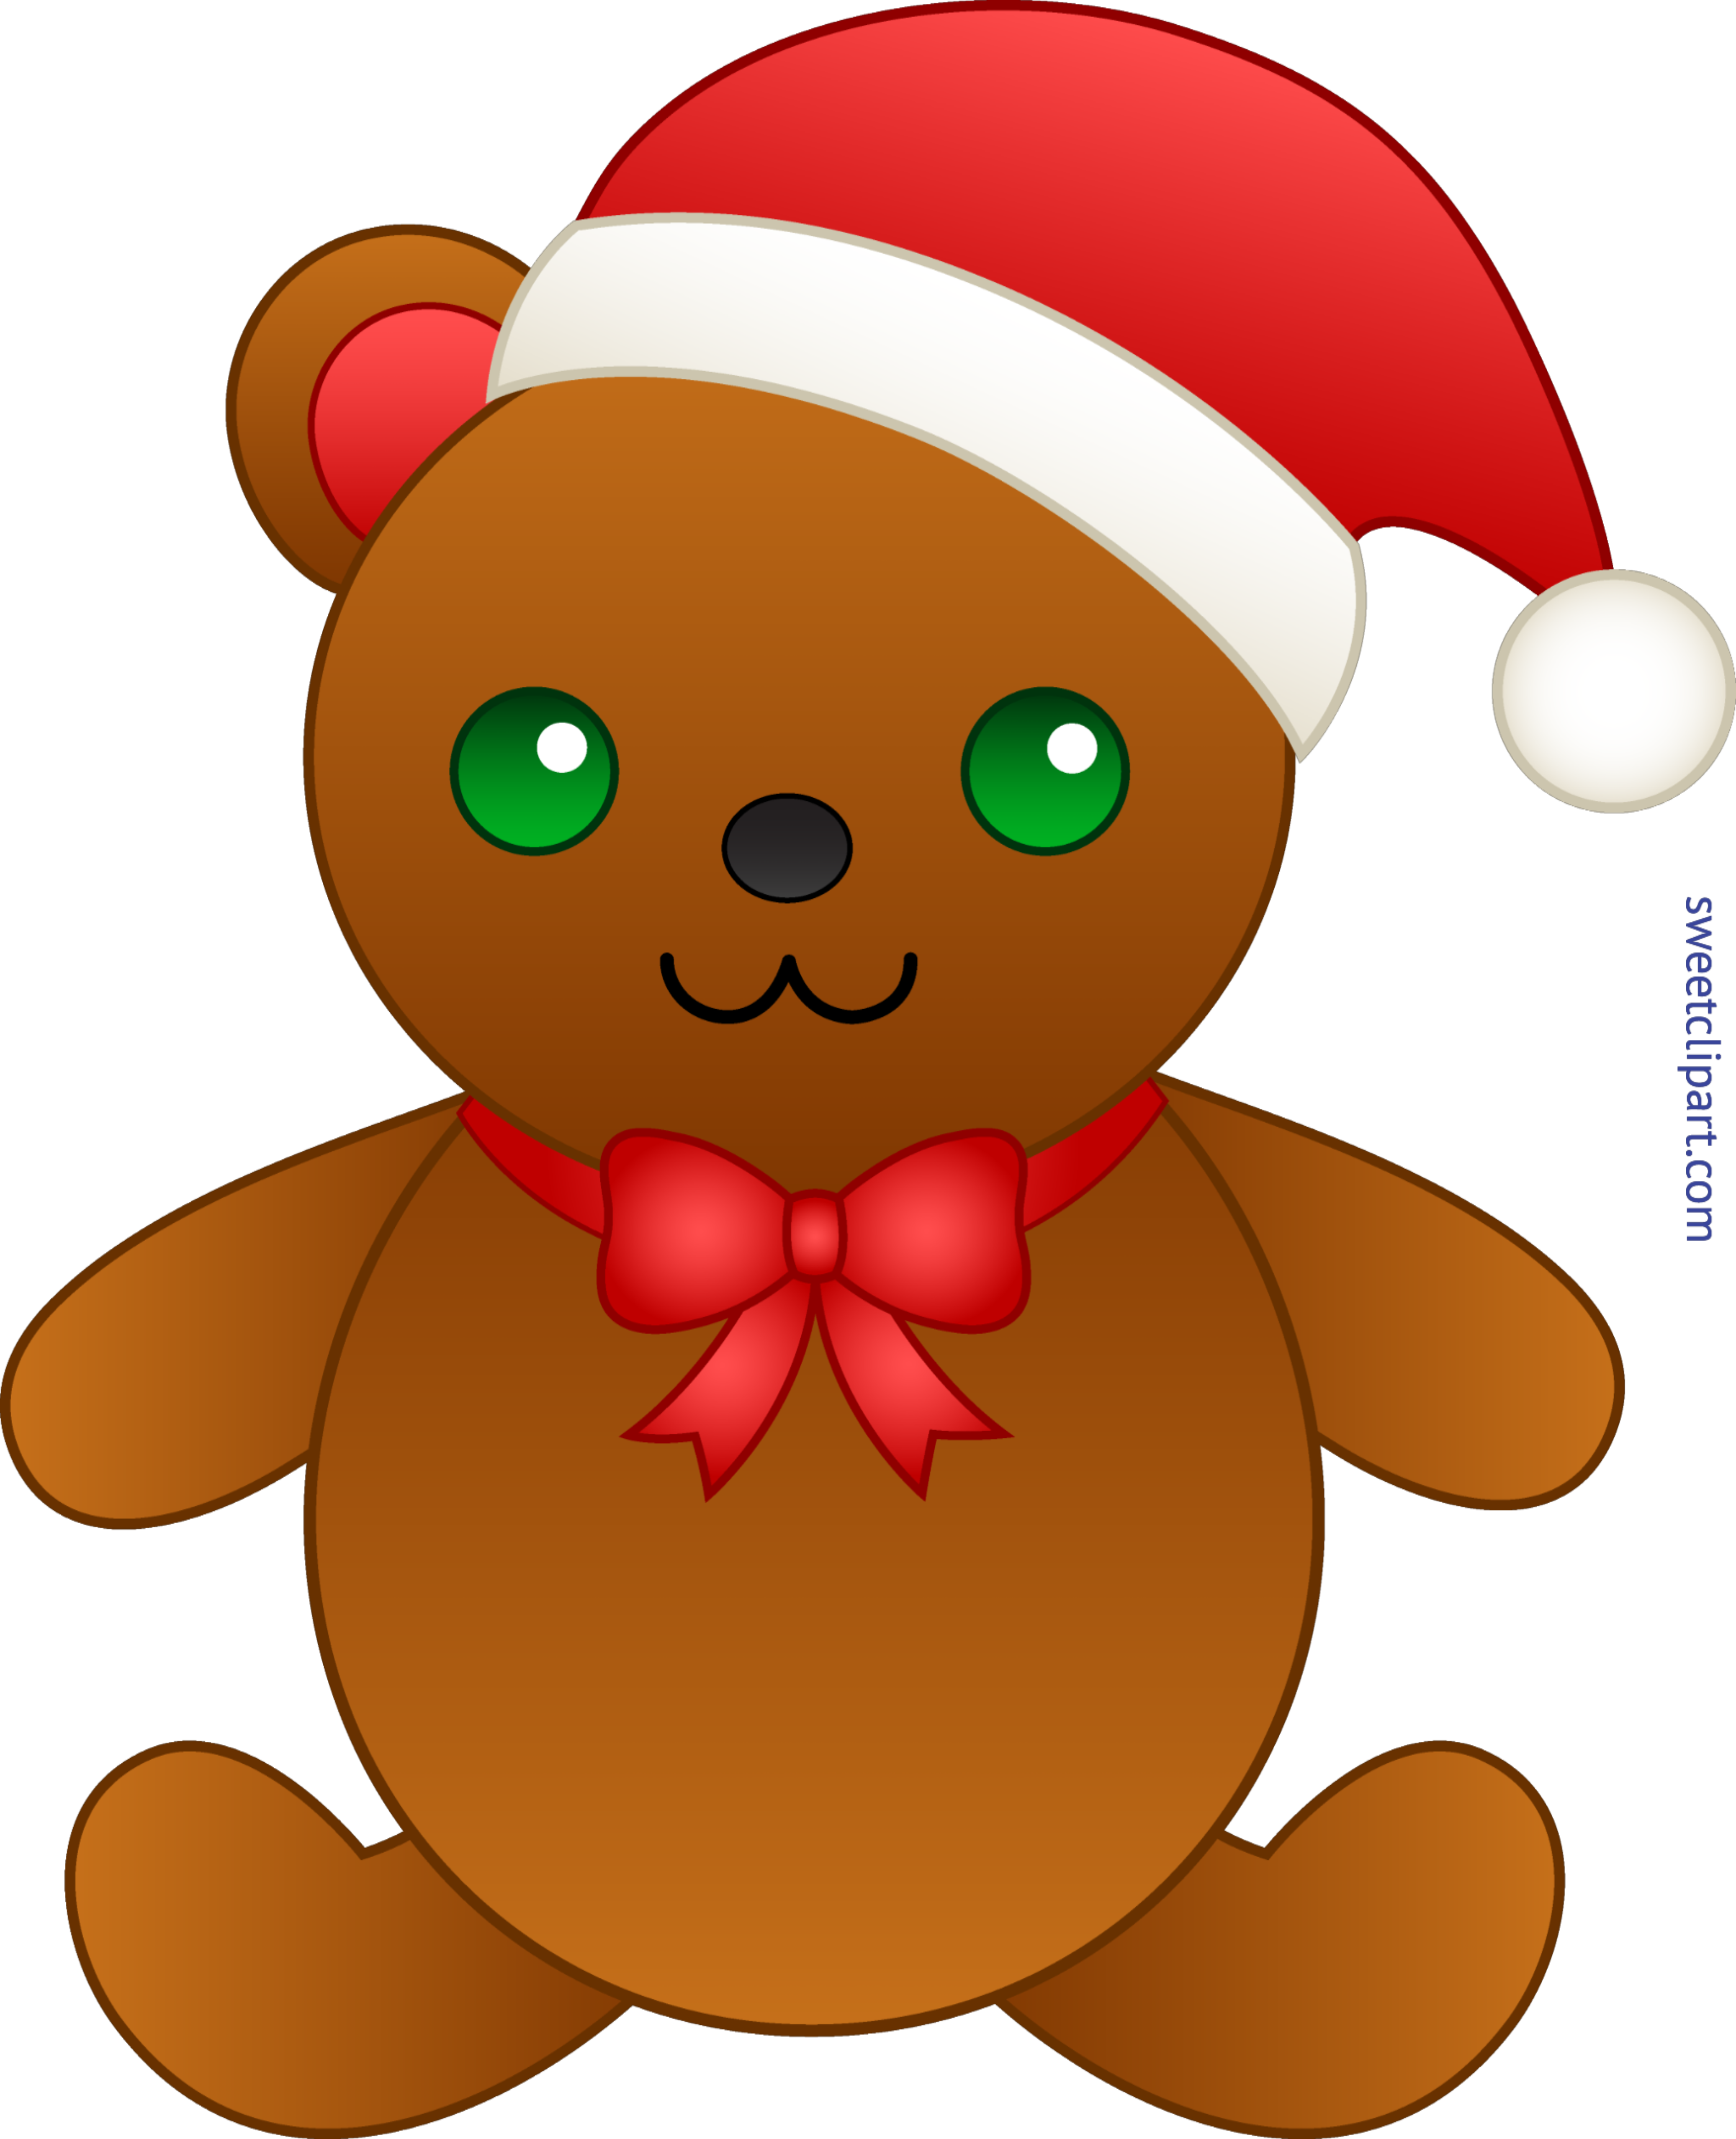 Christmas bear clipart svg free download Christmas Teddy Bear Clipart at GetDrawings.com | Free for personal ... svg free download